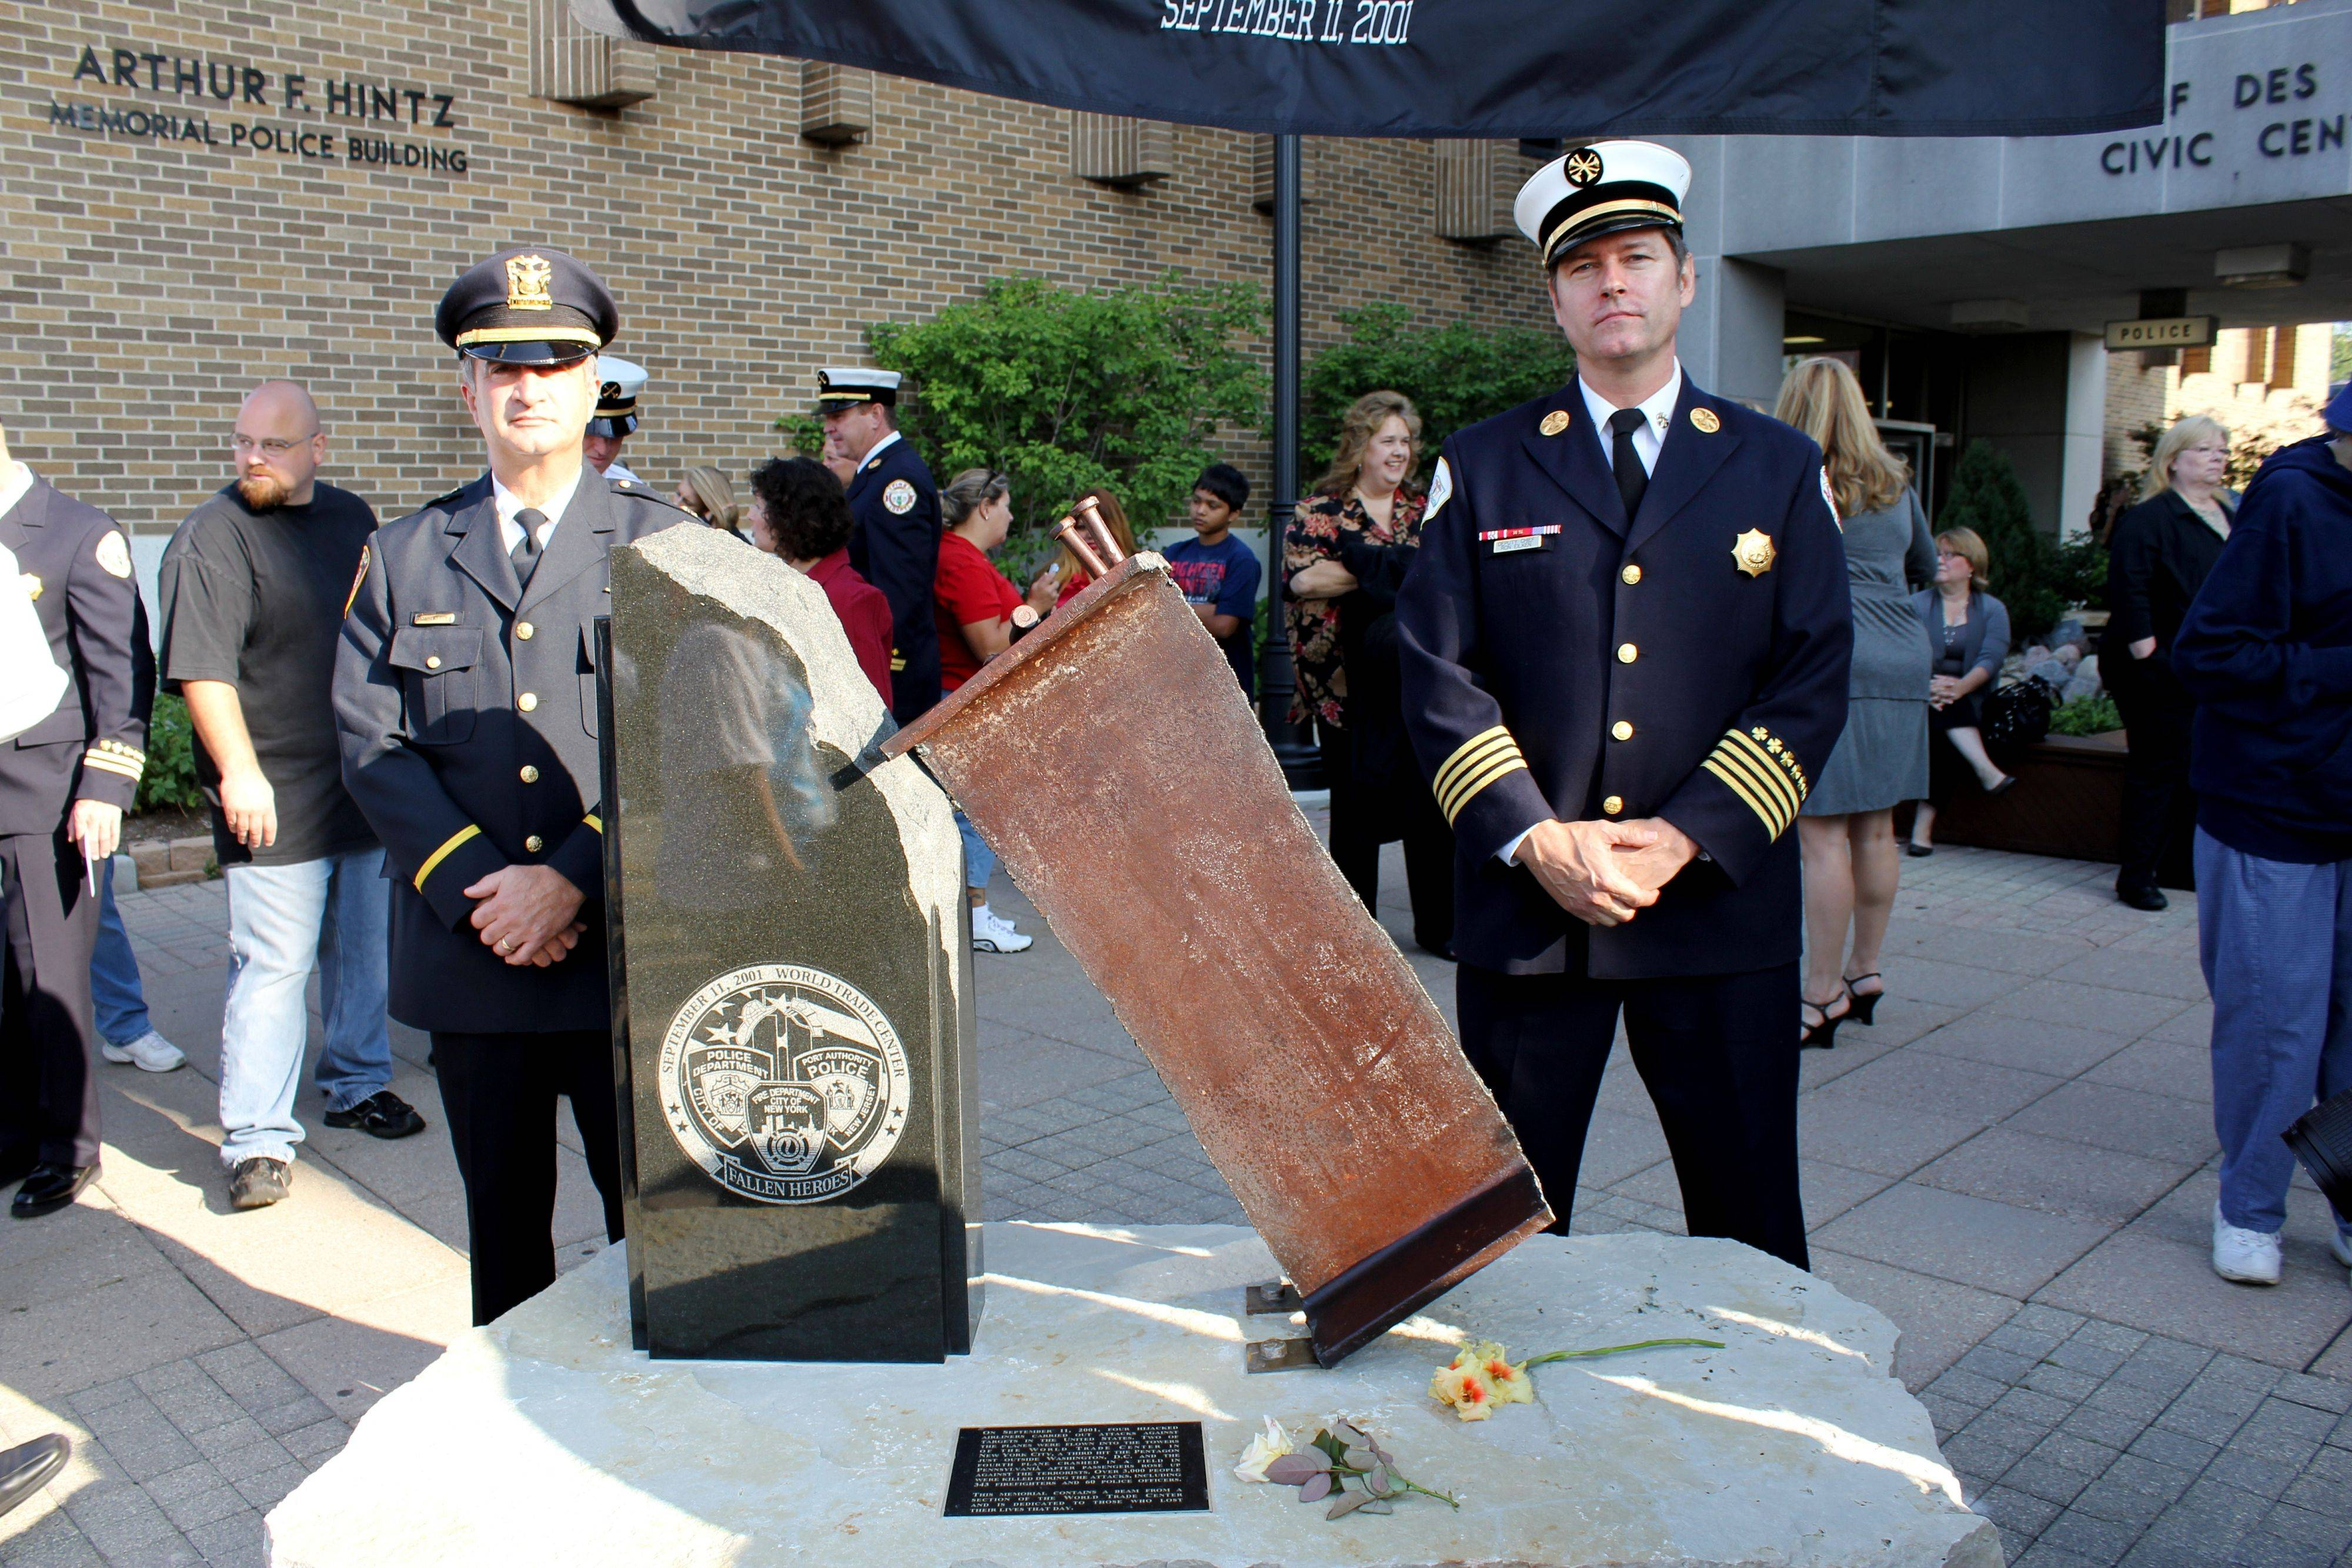 Des Plaines Police Cmdr. Nick Treantafeles and Fire Department Deputy Chief Ron Eilken stand behind the 114-pound beam salvaged from ground zero, which they were instrumental in bringing to Des Plaines. About 500 people attended the 9/11 commemoration Sunday.